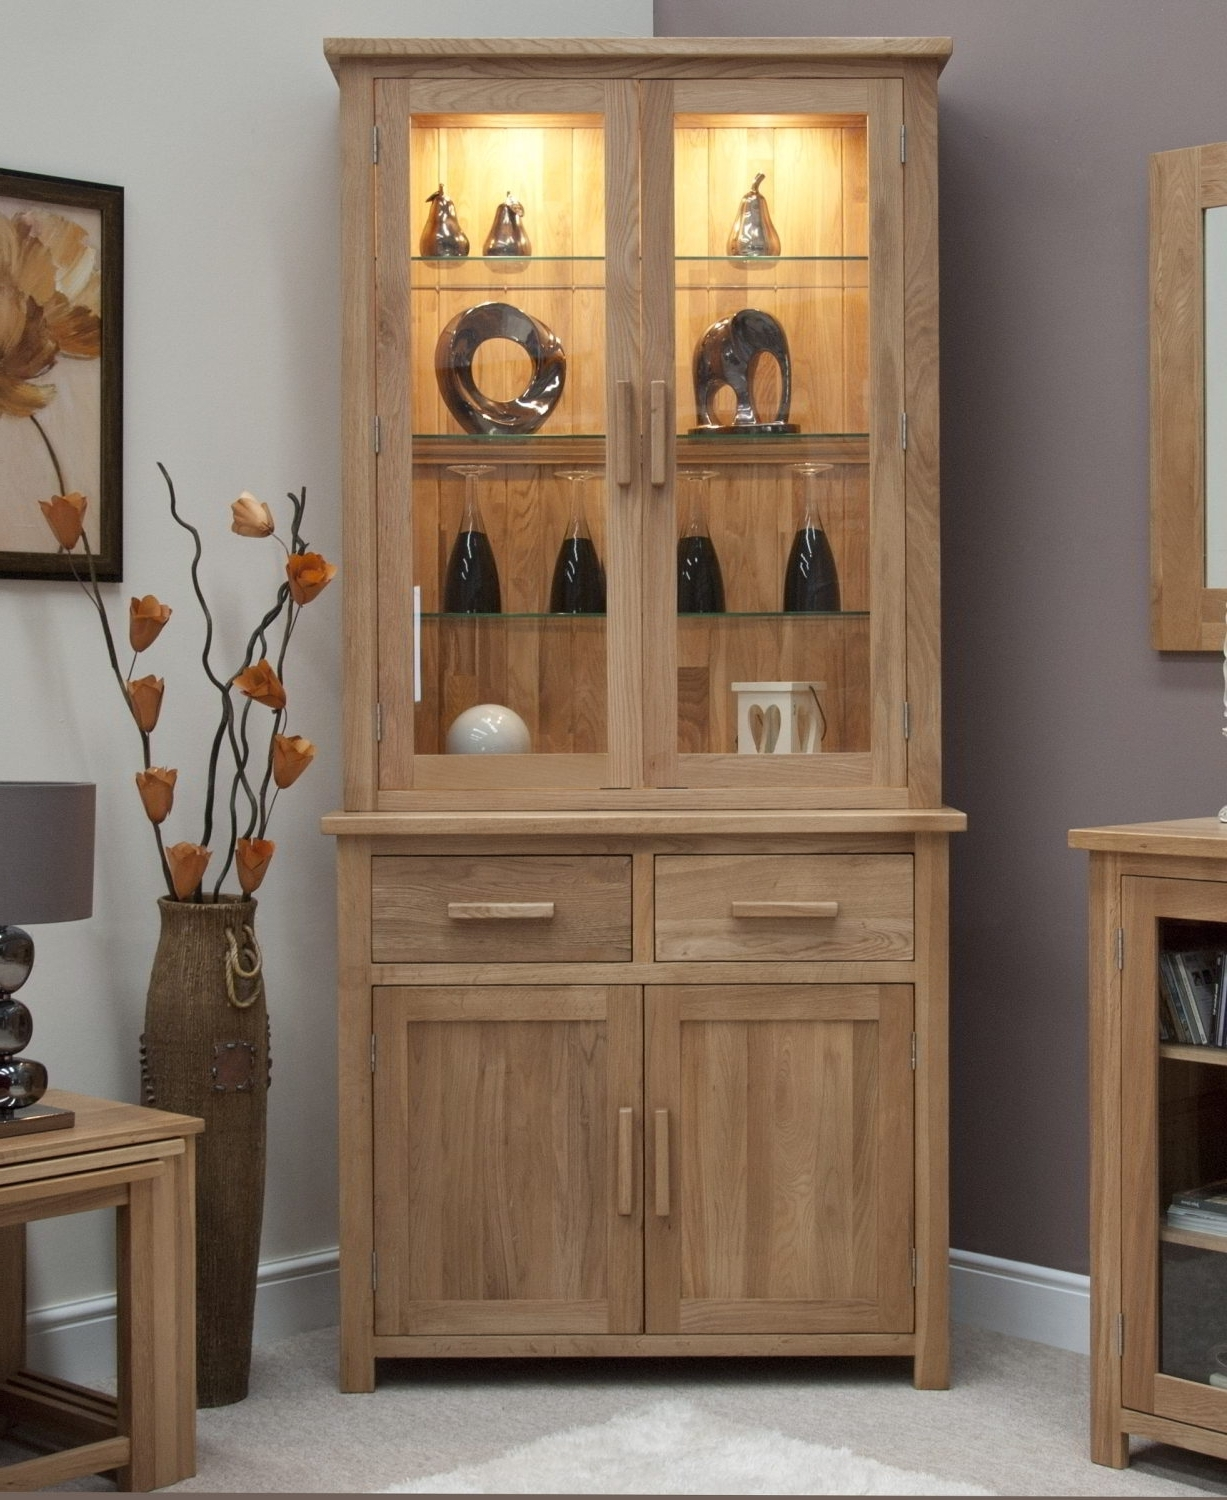 Dining Room Cabinets For Current Eton Solid Oak Living Dining Room Furniture Small Dresser Display (View 11 of 25)